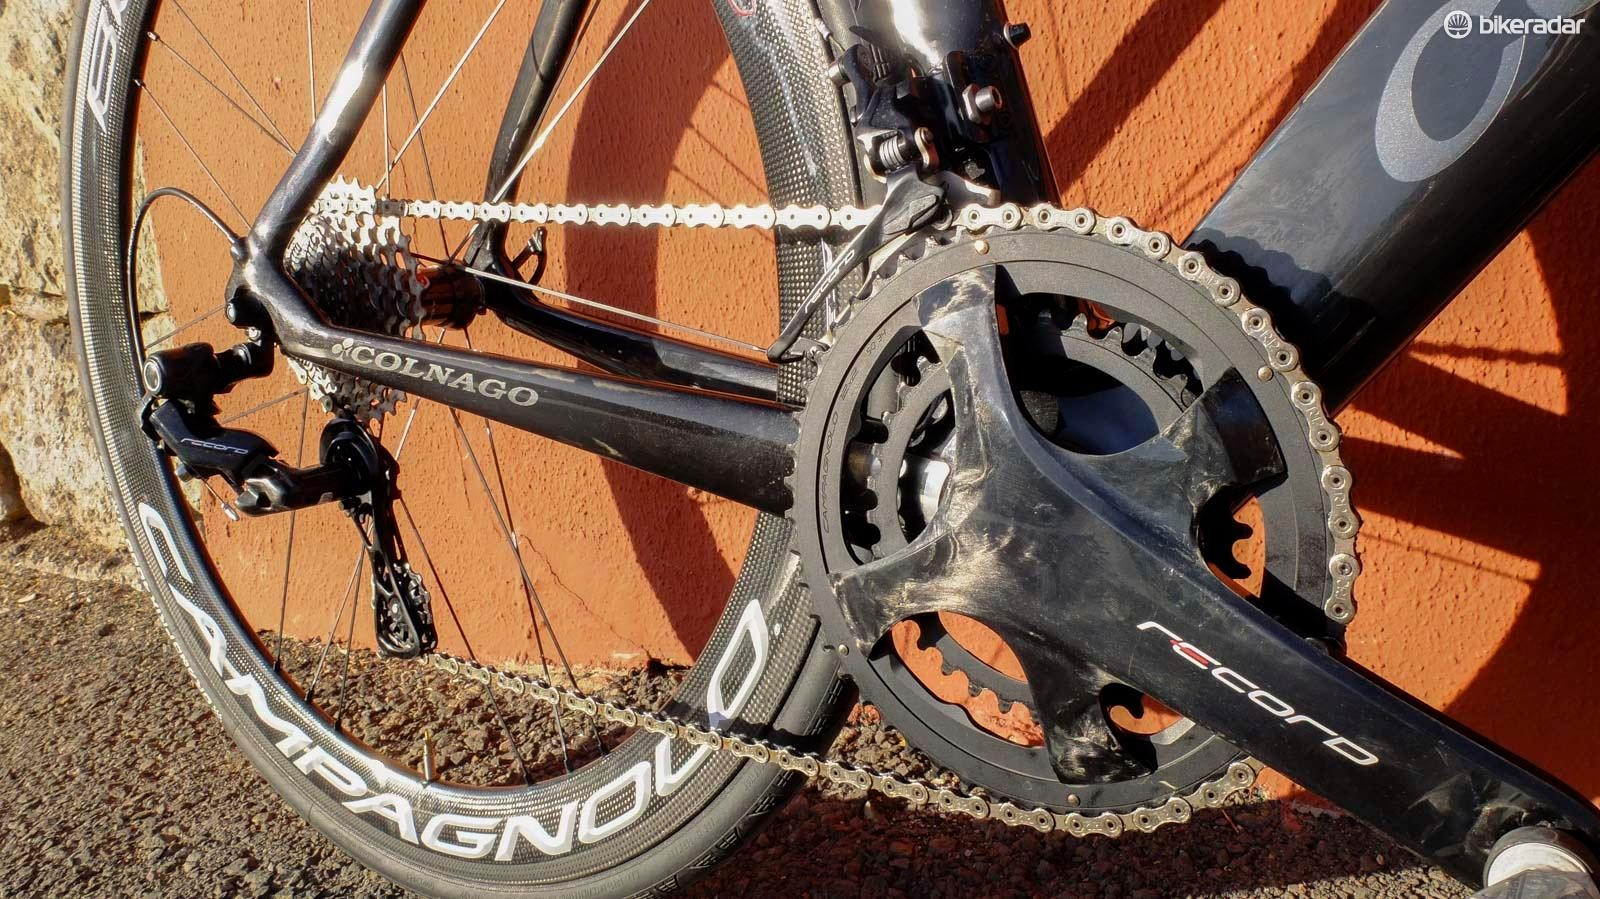 Campagnolo now has 12-speed Record and Super Record groupsets